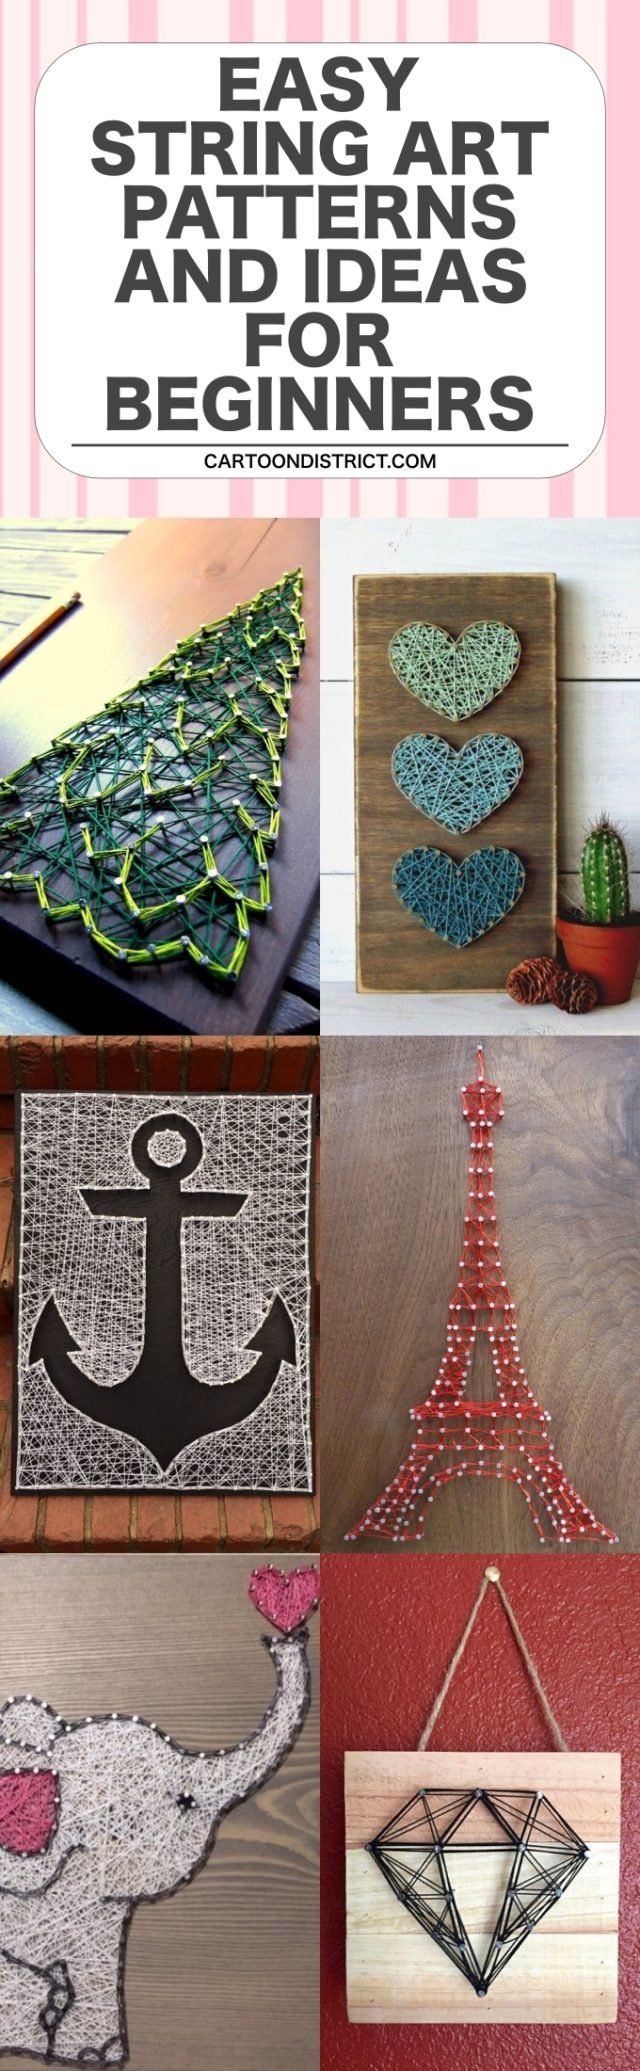 40 Easy String Art Patterns and Ideas